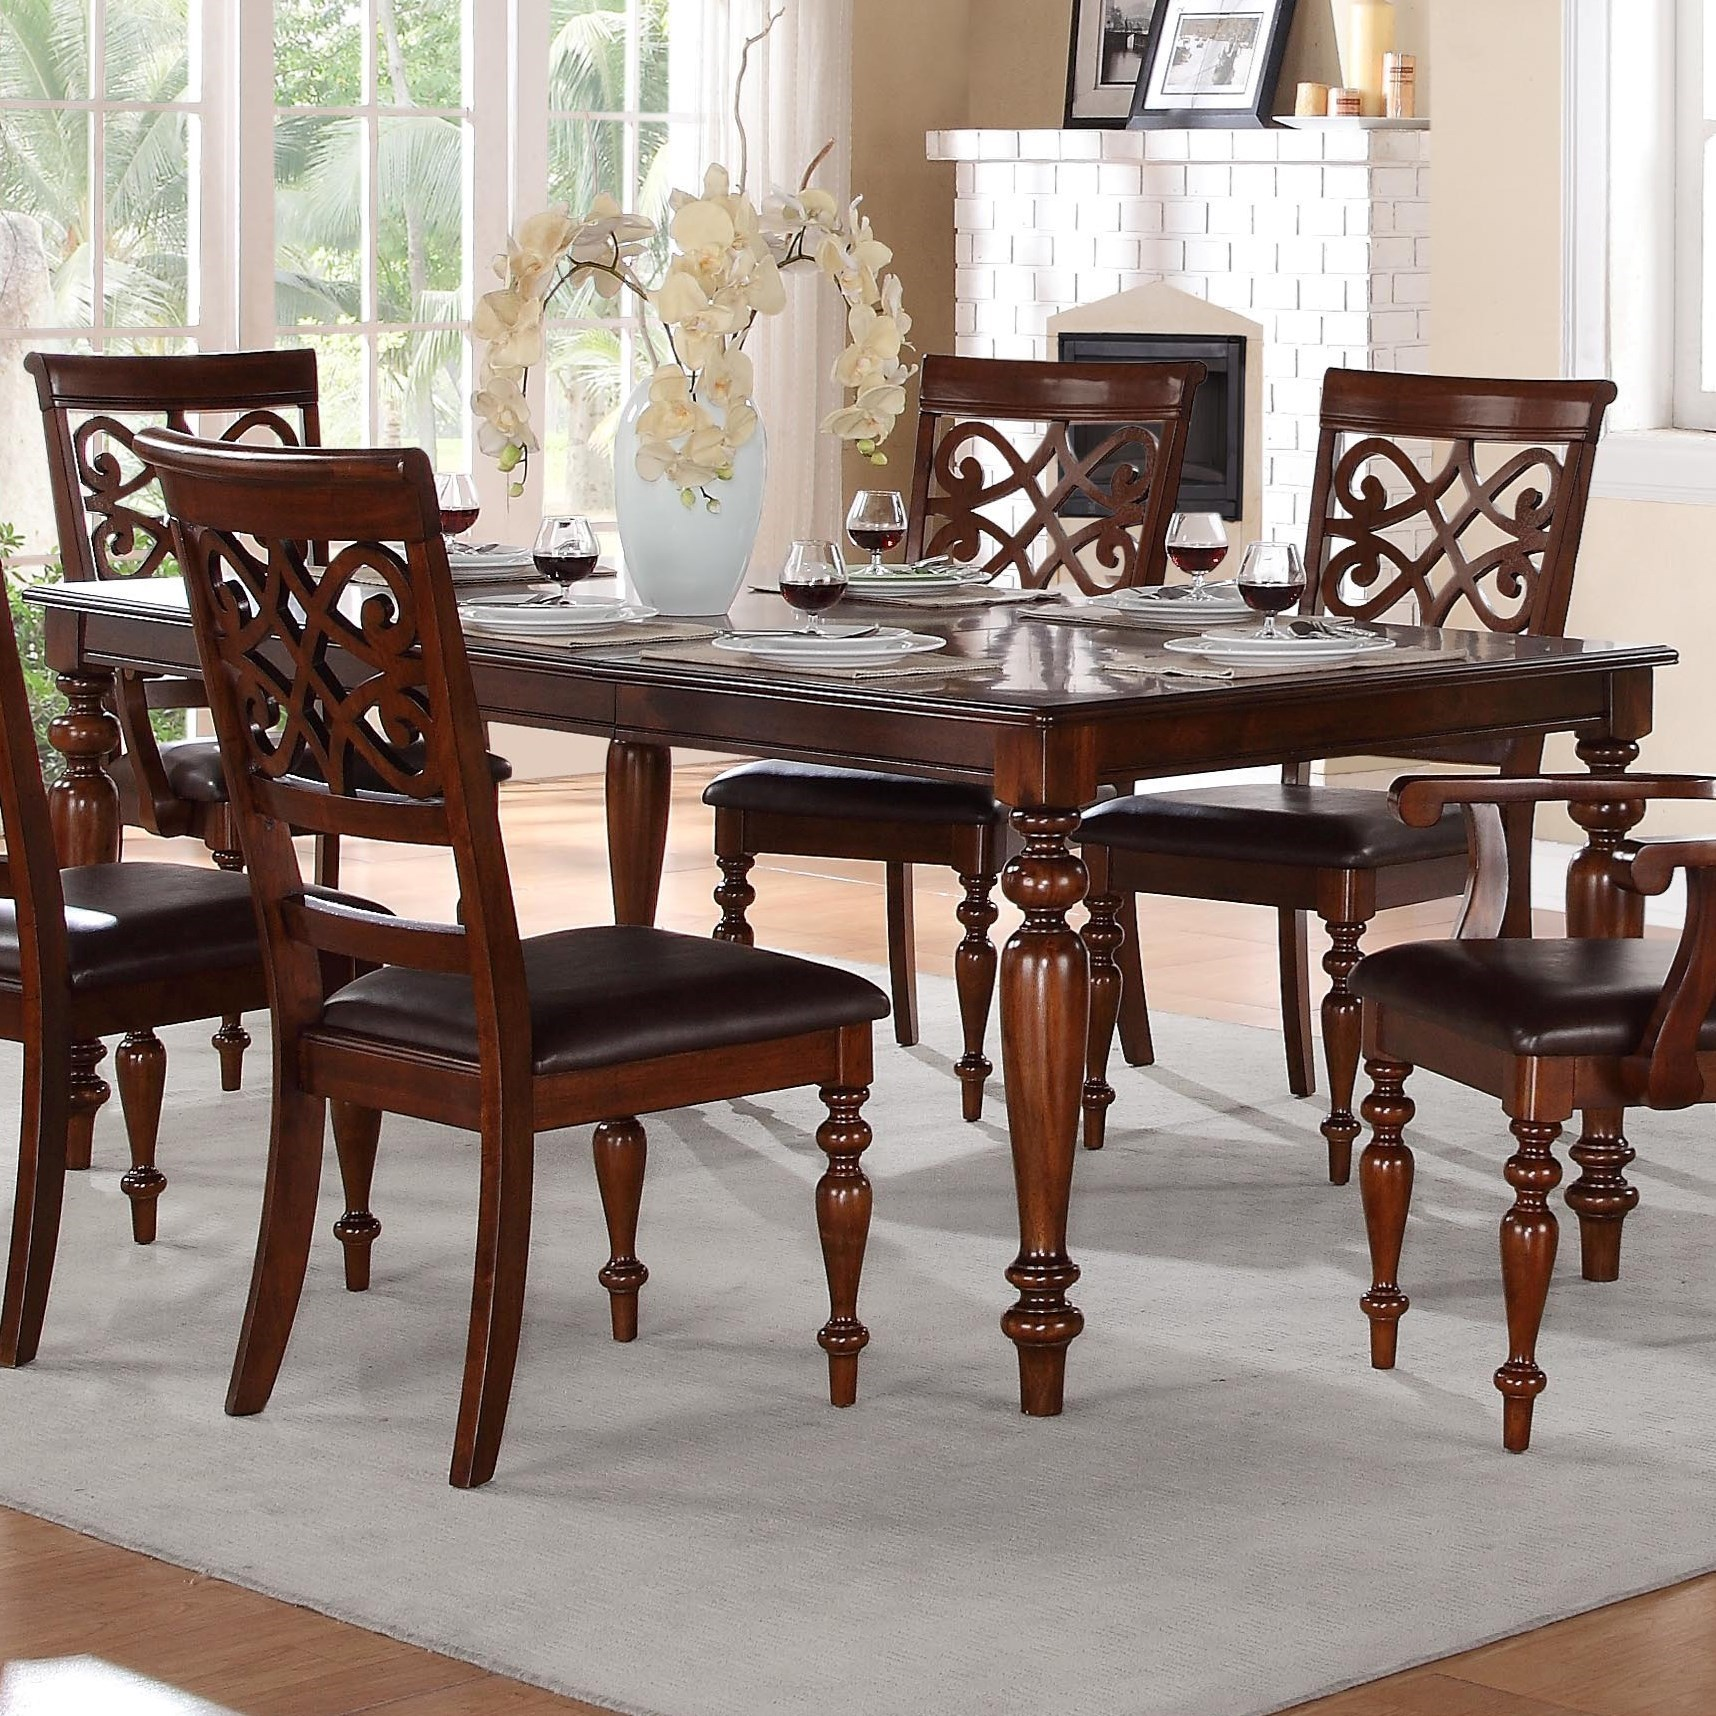 Homelegance Creswell Traditional Formal Dining Table with  : products2Fhomelegance2Fcolor2Fcreswell20 2050565056 78 b1jpgscalebothampwidth500ampheight500ampfsharpen25ampdown from www.dhifurniture.com size 500 x 500 jpeg 79kB